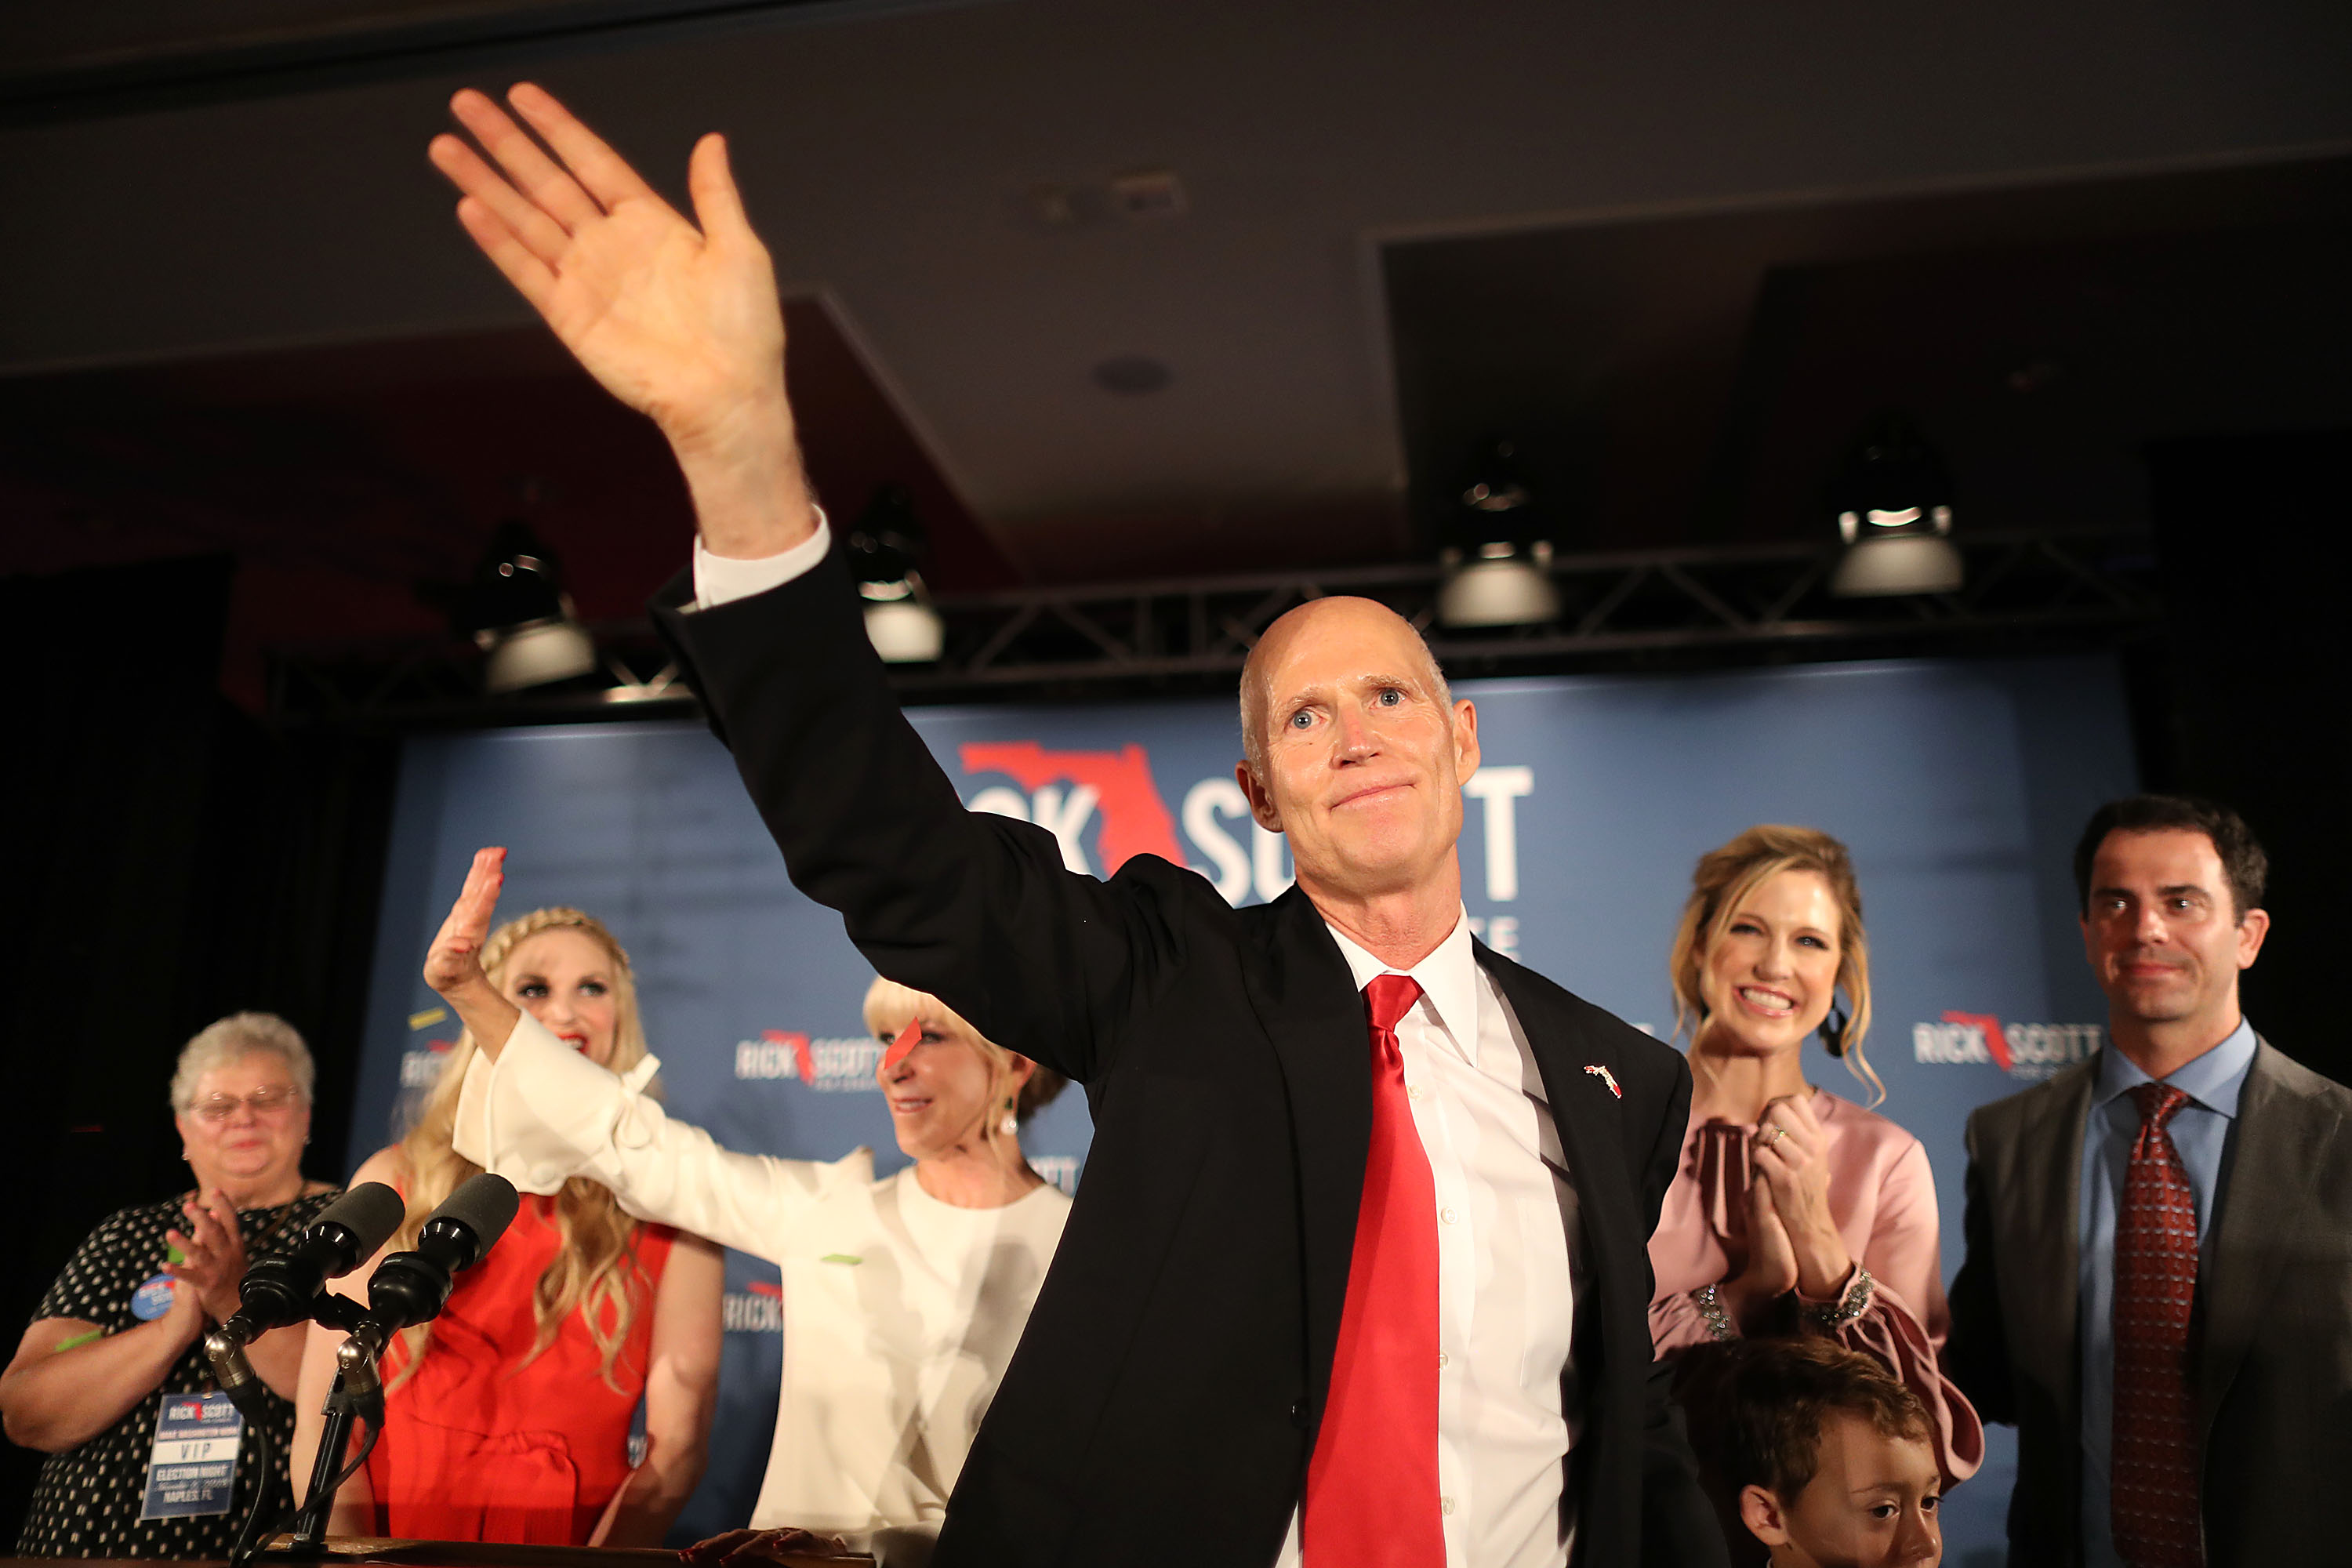 Florida Governor Rick Scott and his wife, Ann Scott, along with their daughters, Jordan Scott (L) and Alison Guimard (2nd R) take to the stage during his election night party at the LaPlaya Beach & Golf Resort on November 06, 2018 in Naples, Florida. (Joe Raedle/Getty Images)